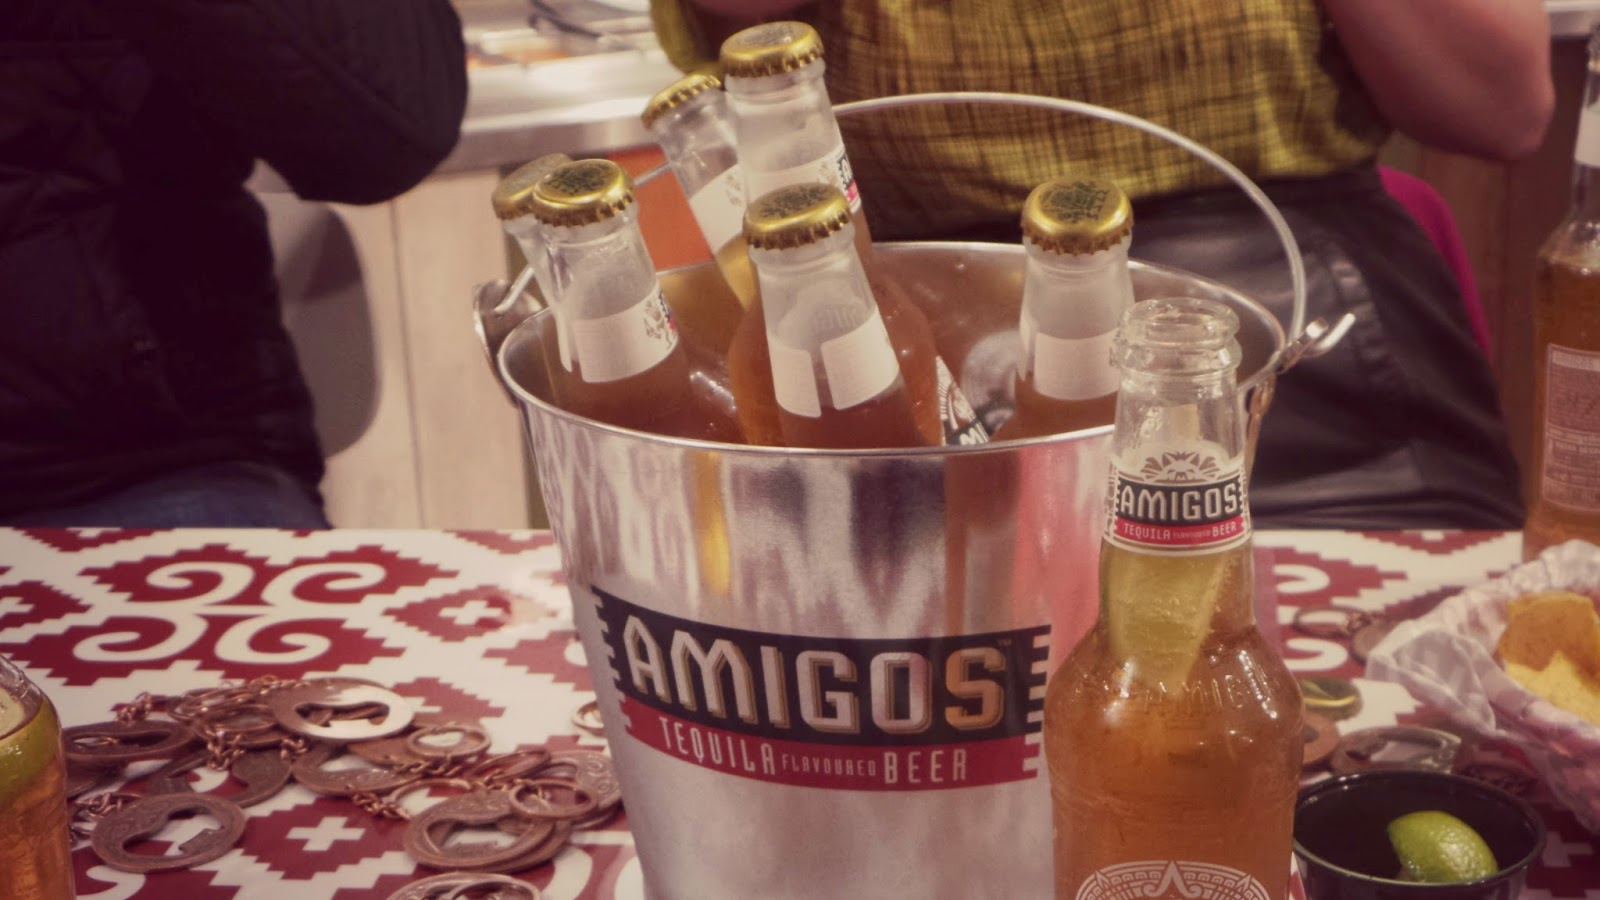 Amigos tequila beer